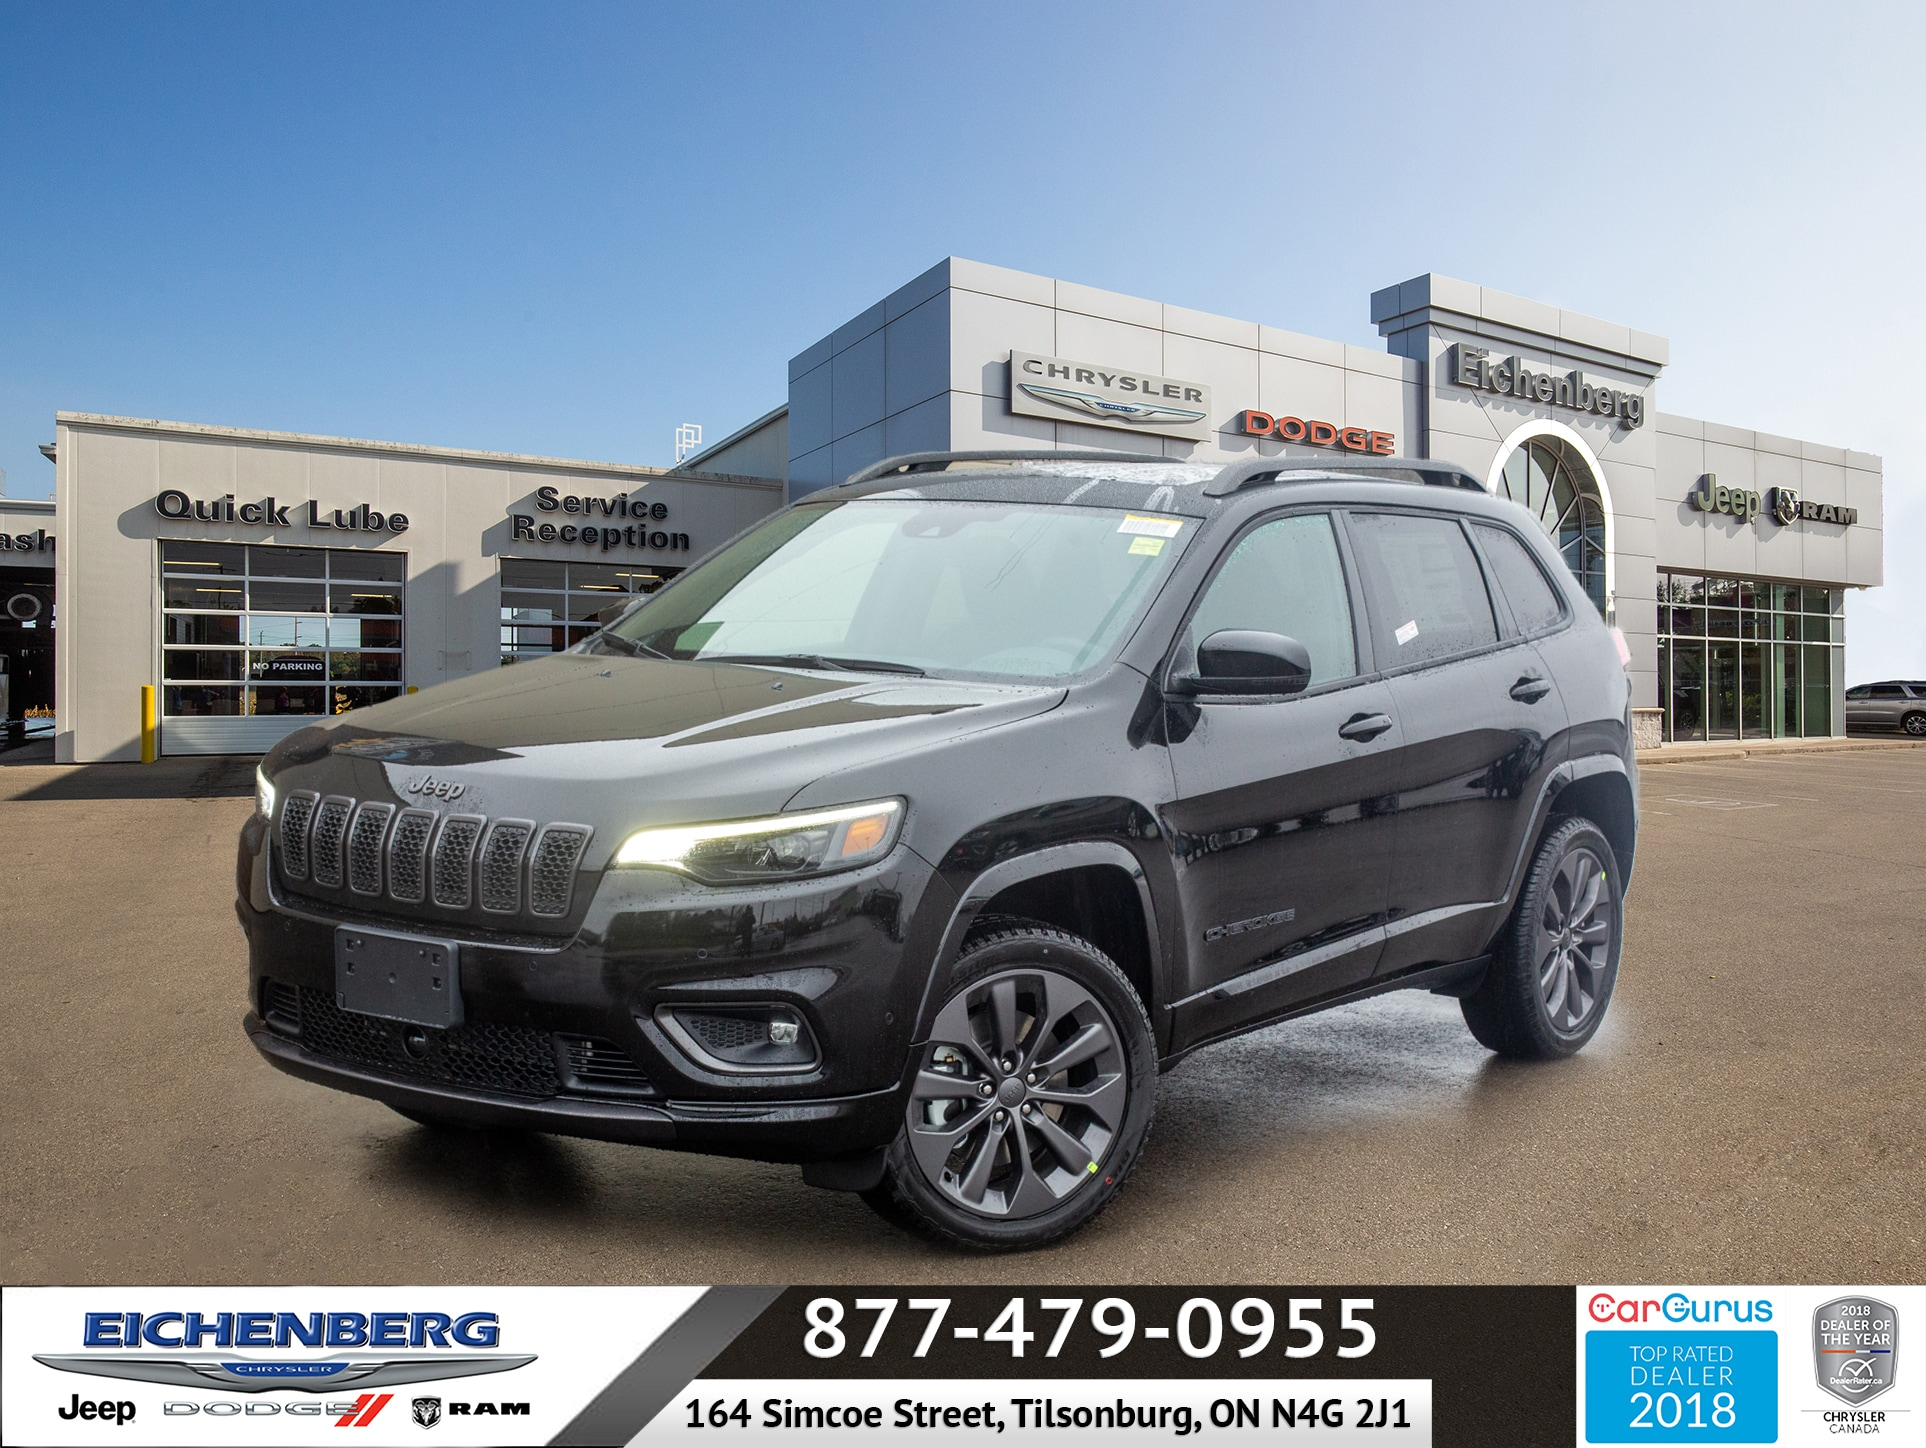 used 2021 Jeep Cherokee car, priced at $42,999